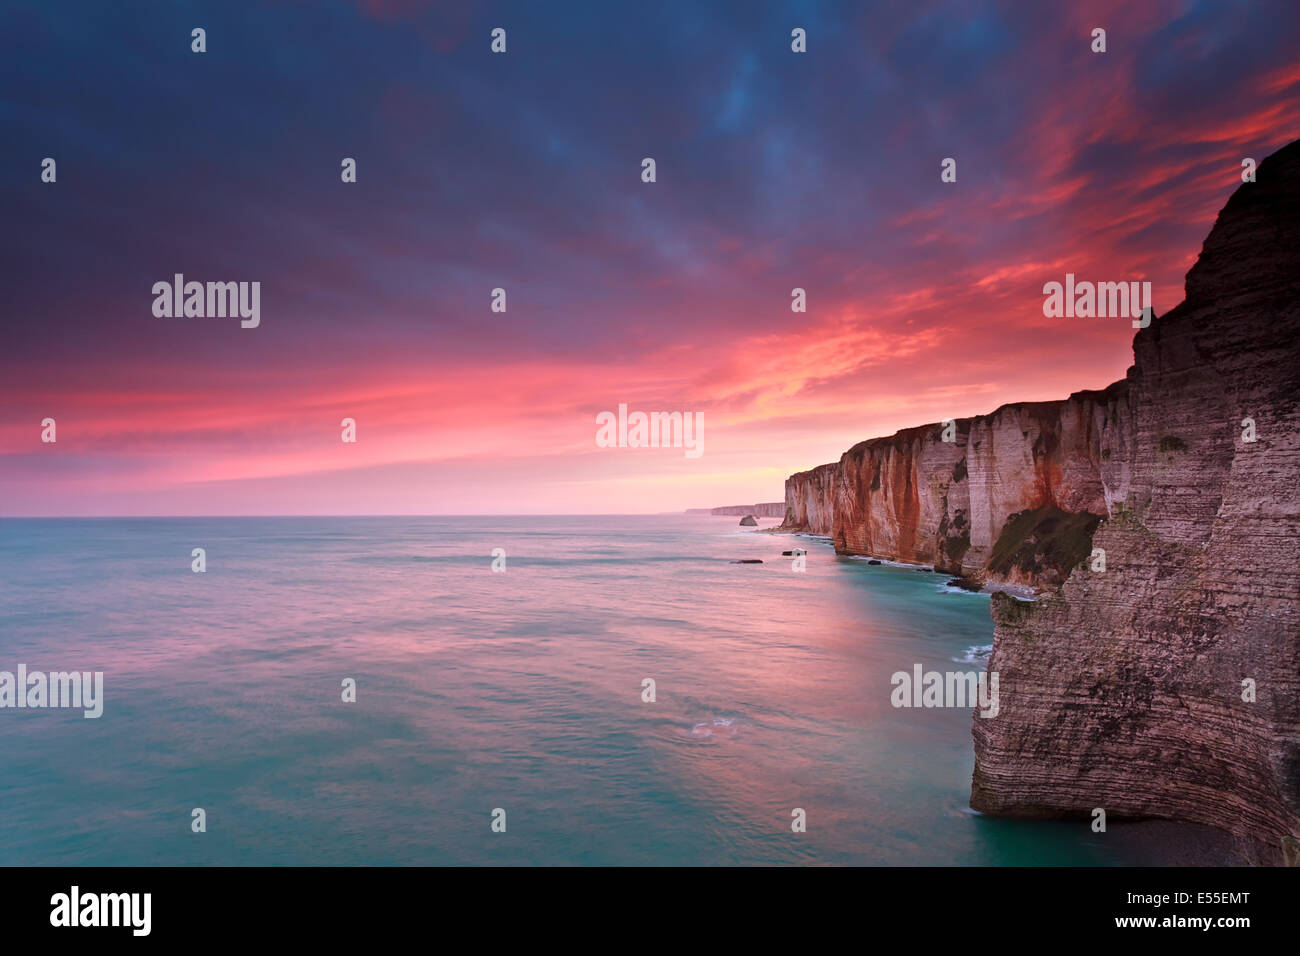 fire sunrise over cliffs in Atlantic ocean, France - Stock Image